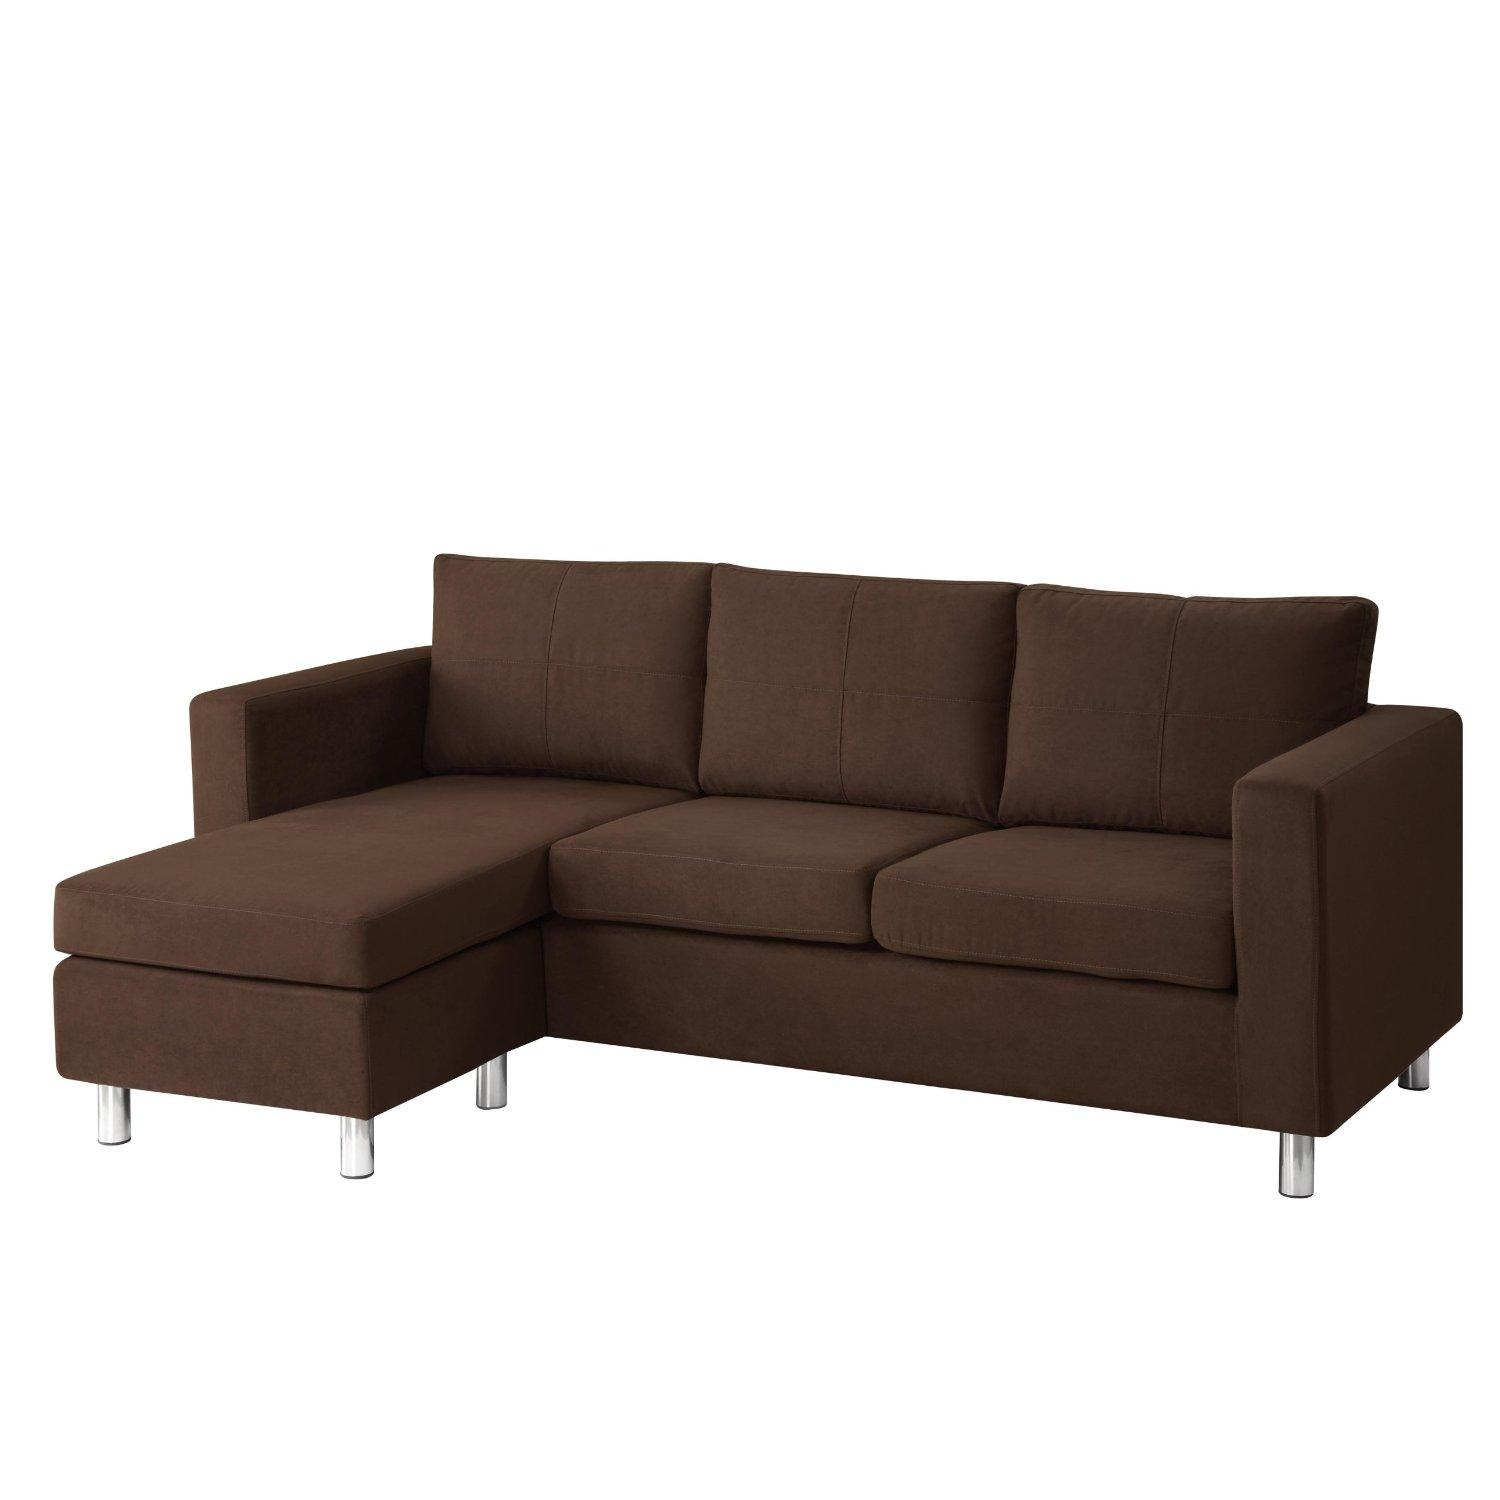 20 Best Small Armless Sofa Sofa Ideas